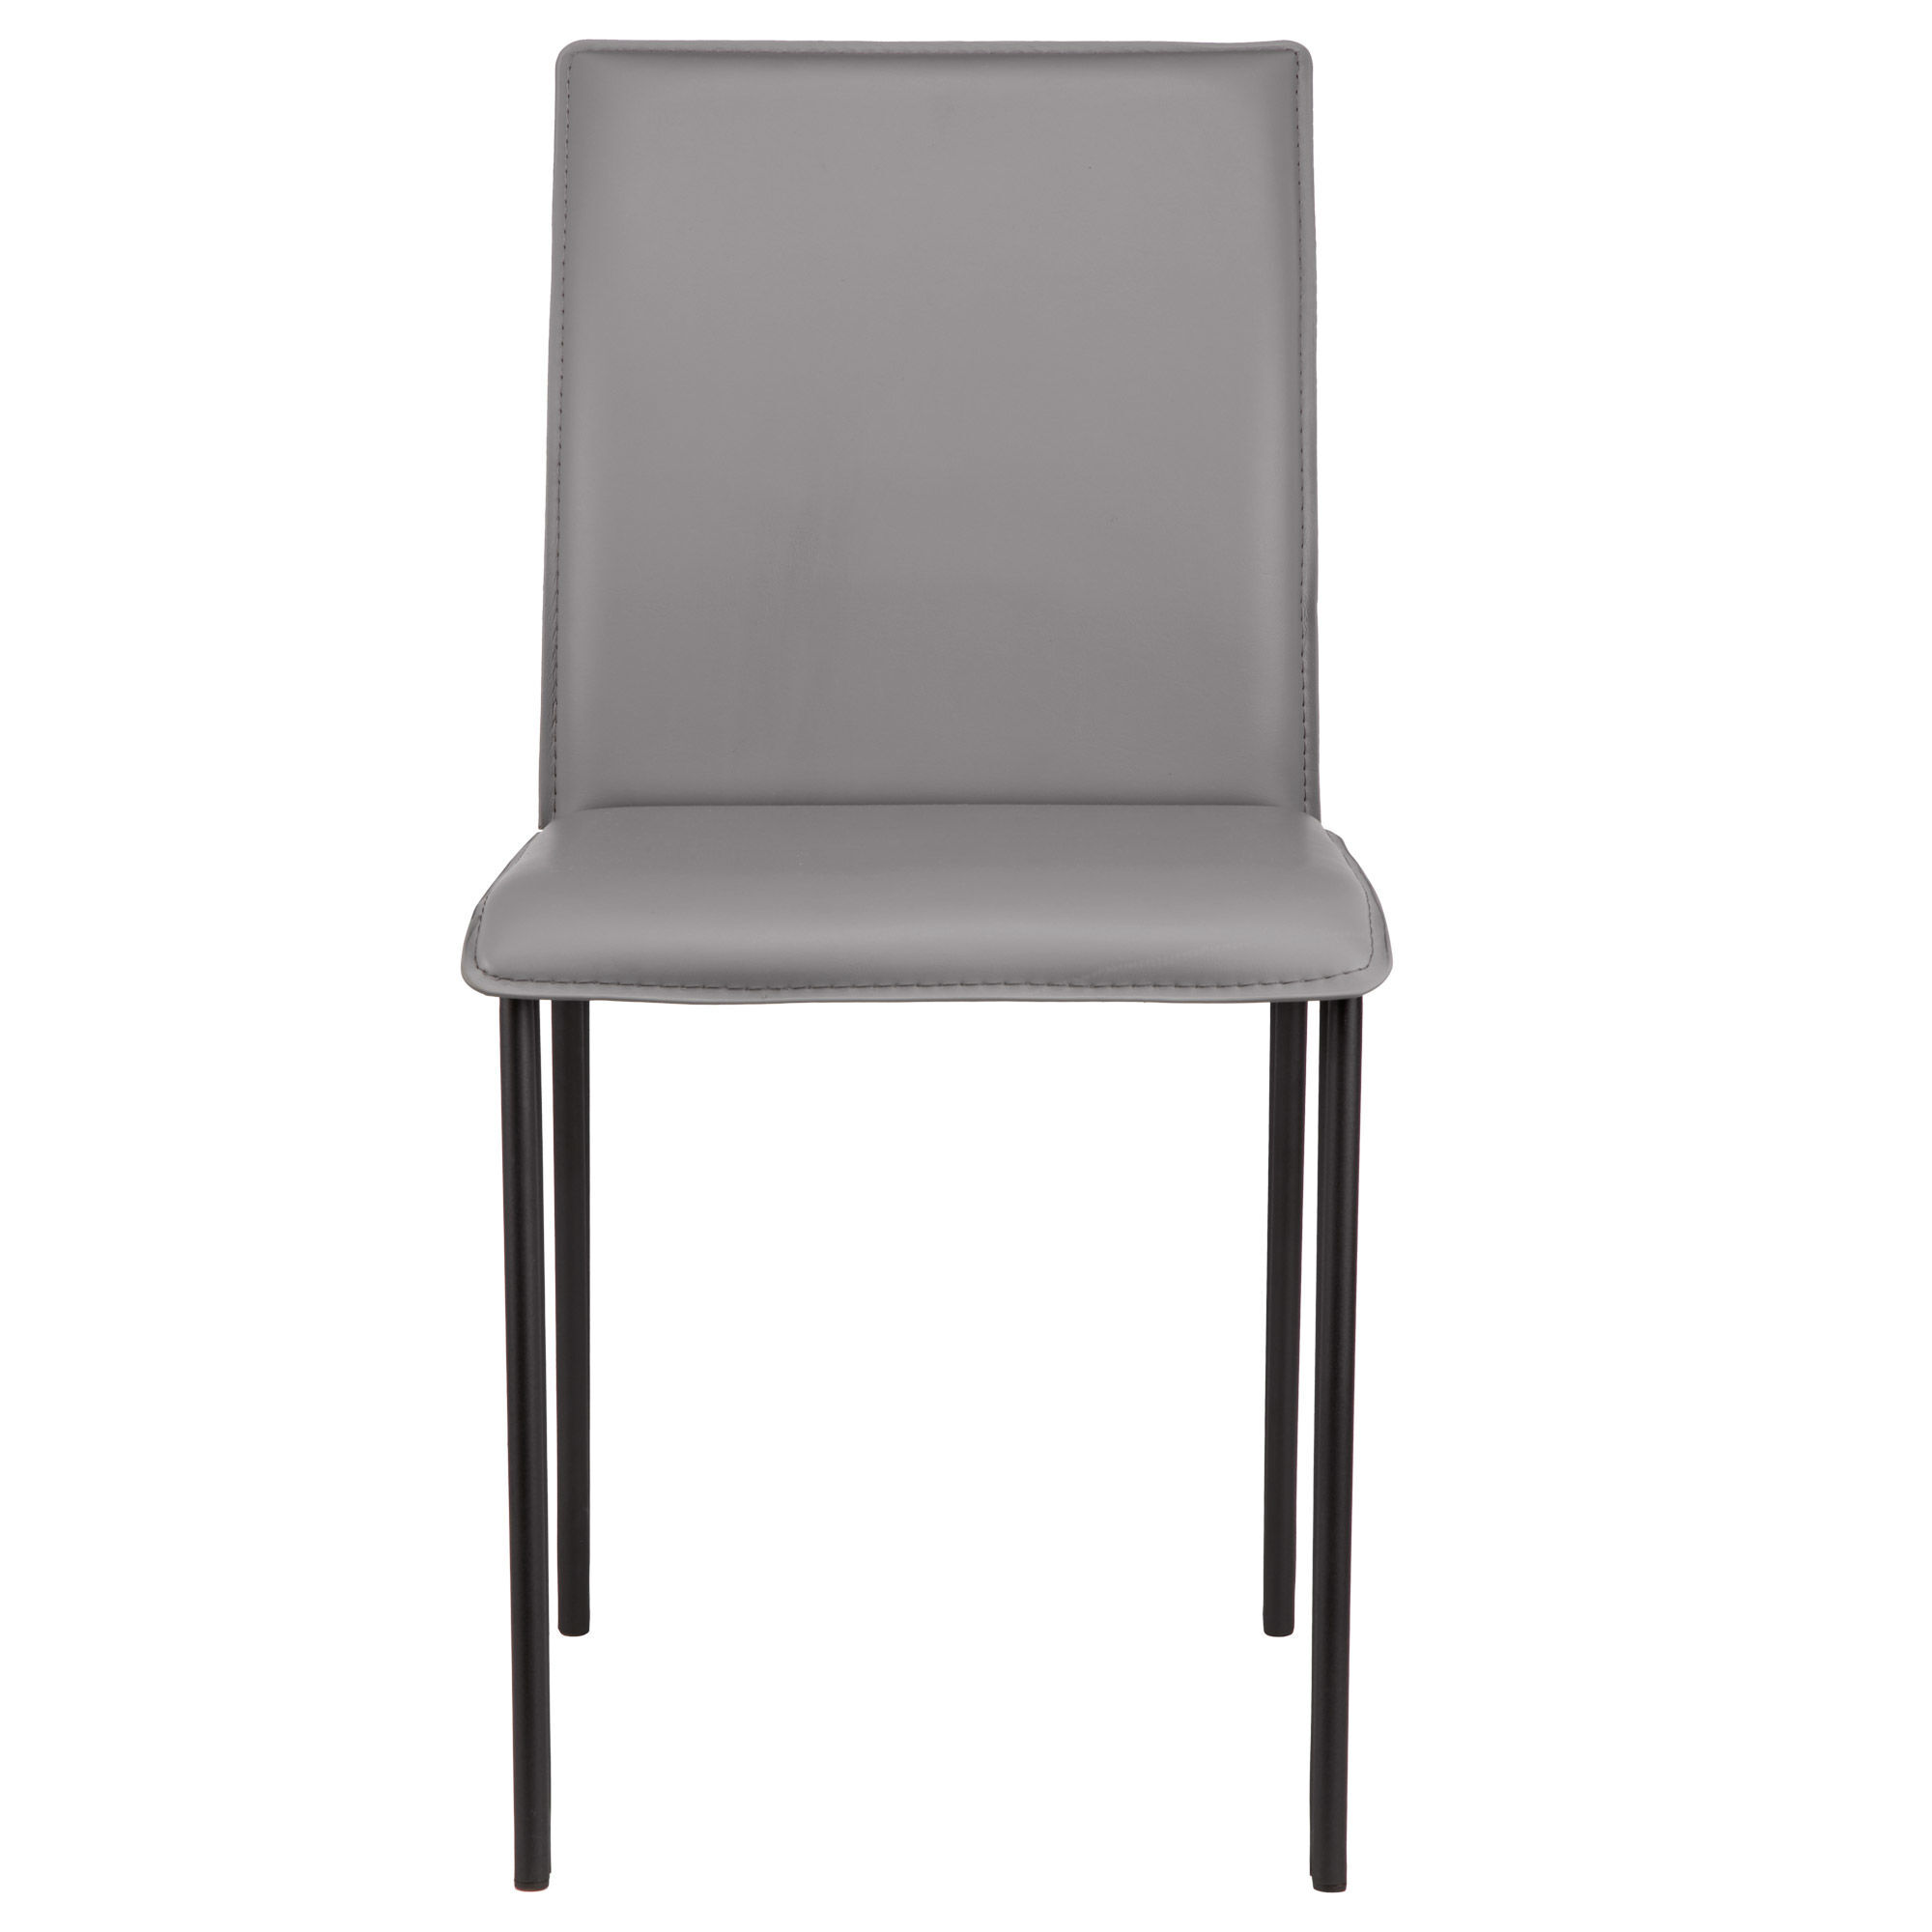 dining chair covers edmonton adirondack and ottoman set chairs at great prices bouclair com faux leather metal